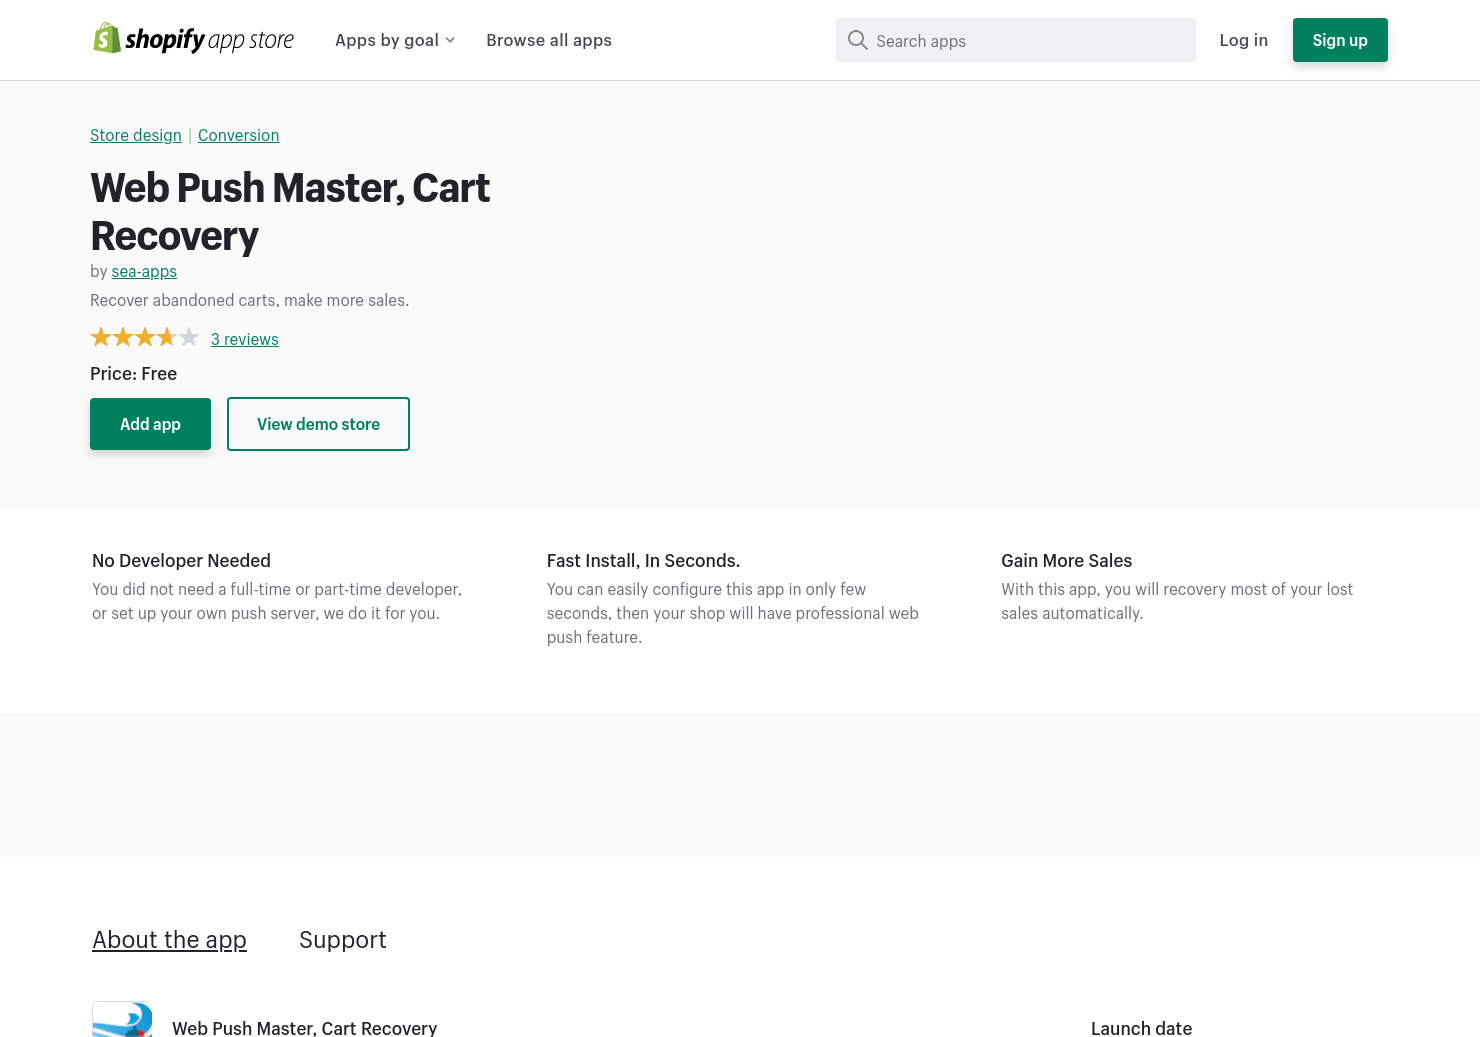 Web Push Master, Cart Recovery